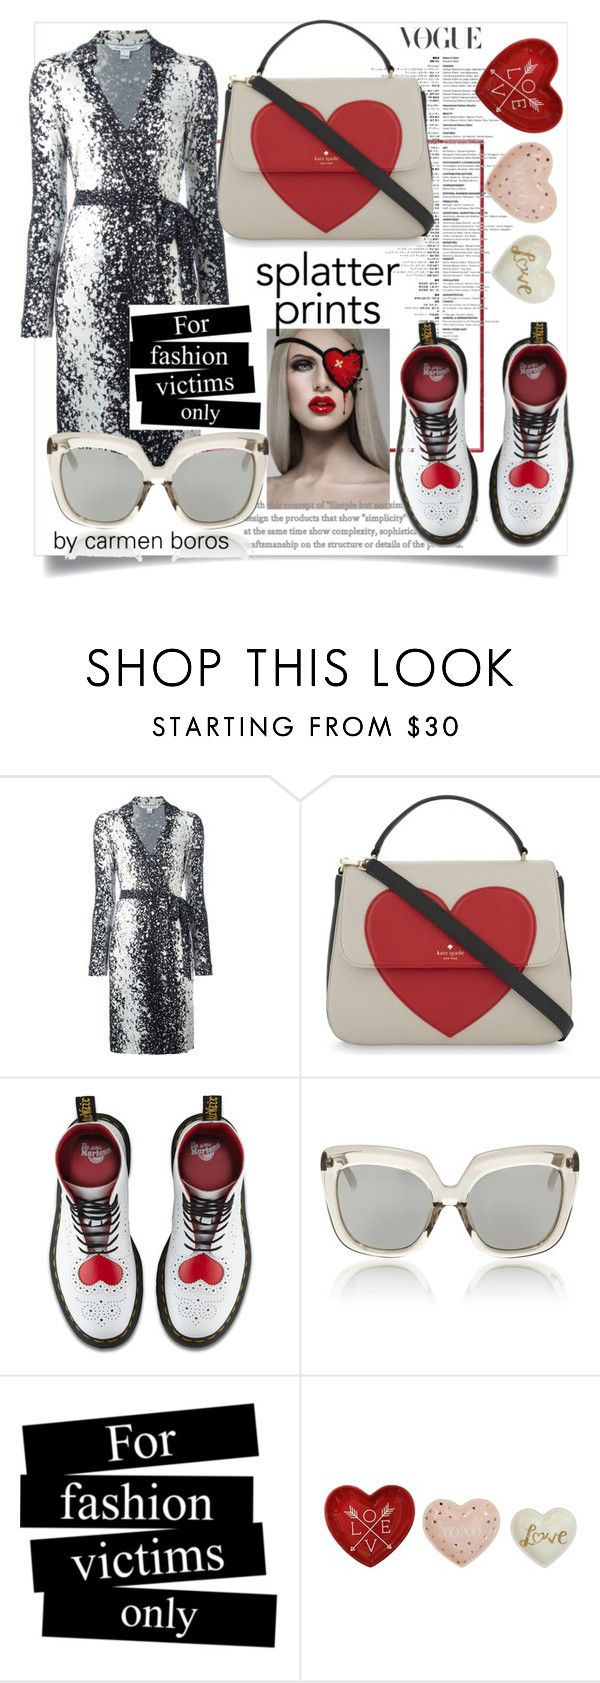 """splatter prins & hearts"" by boroscarmen ❤ liked on Polyvore featuring Diane Von Furstenberg, Kate Spade, Dr. Martens and Linda Farrow"